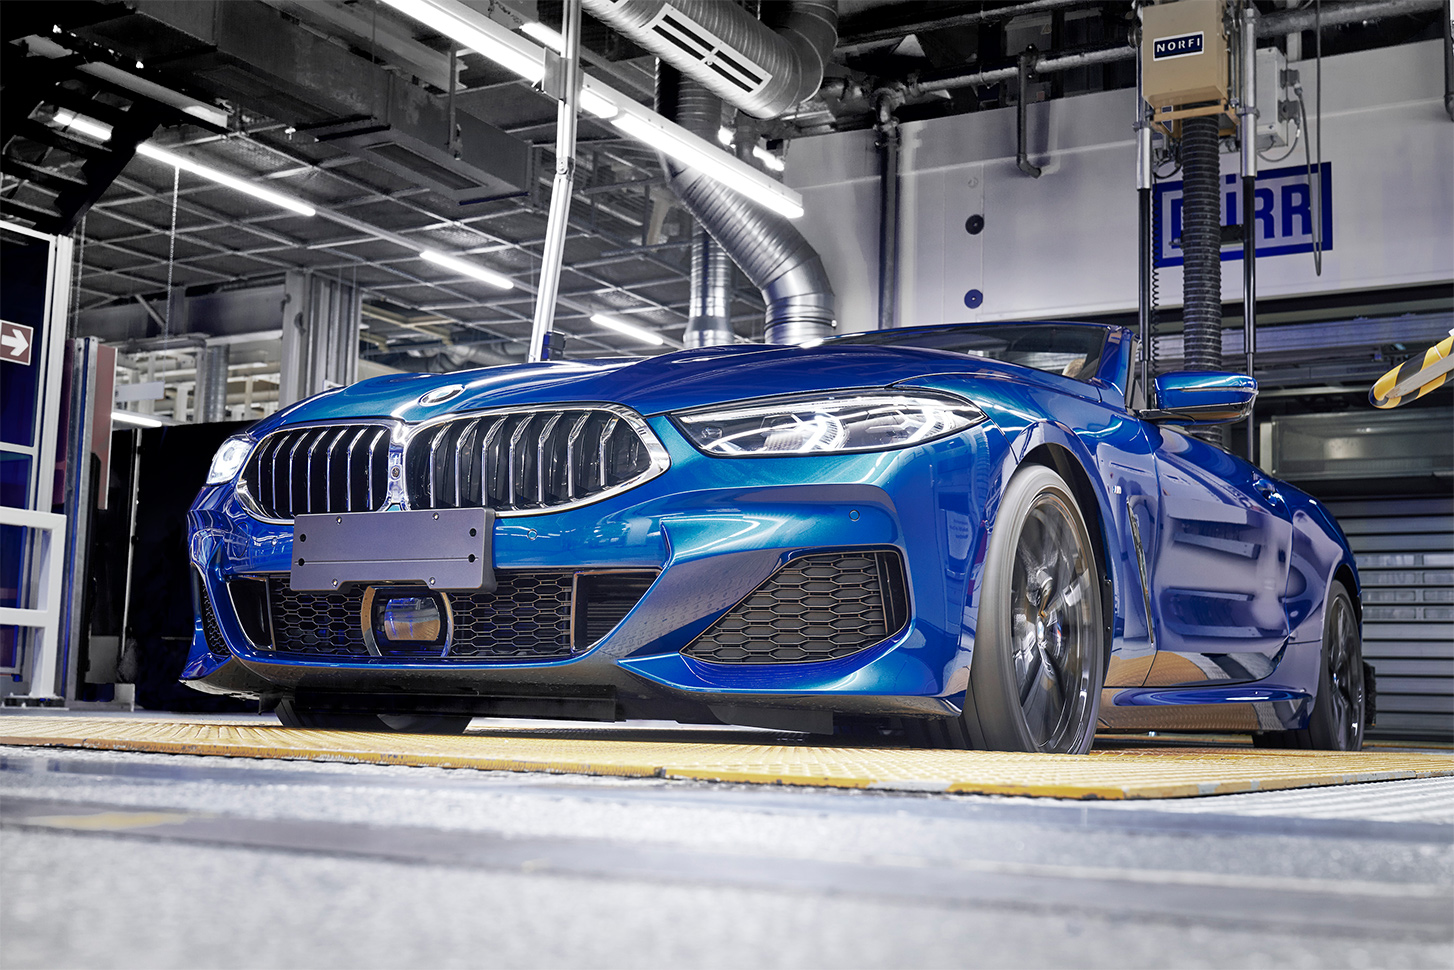 TrackWorthy - First BMW 8 Series Cabriolet rolls off the line - 840d (2)